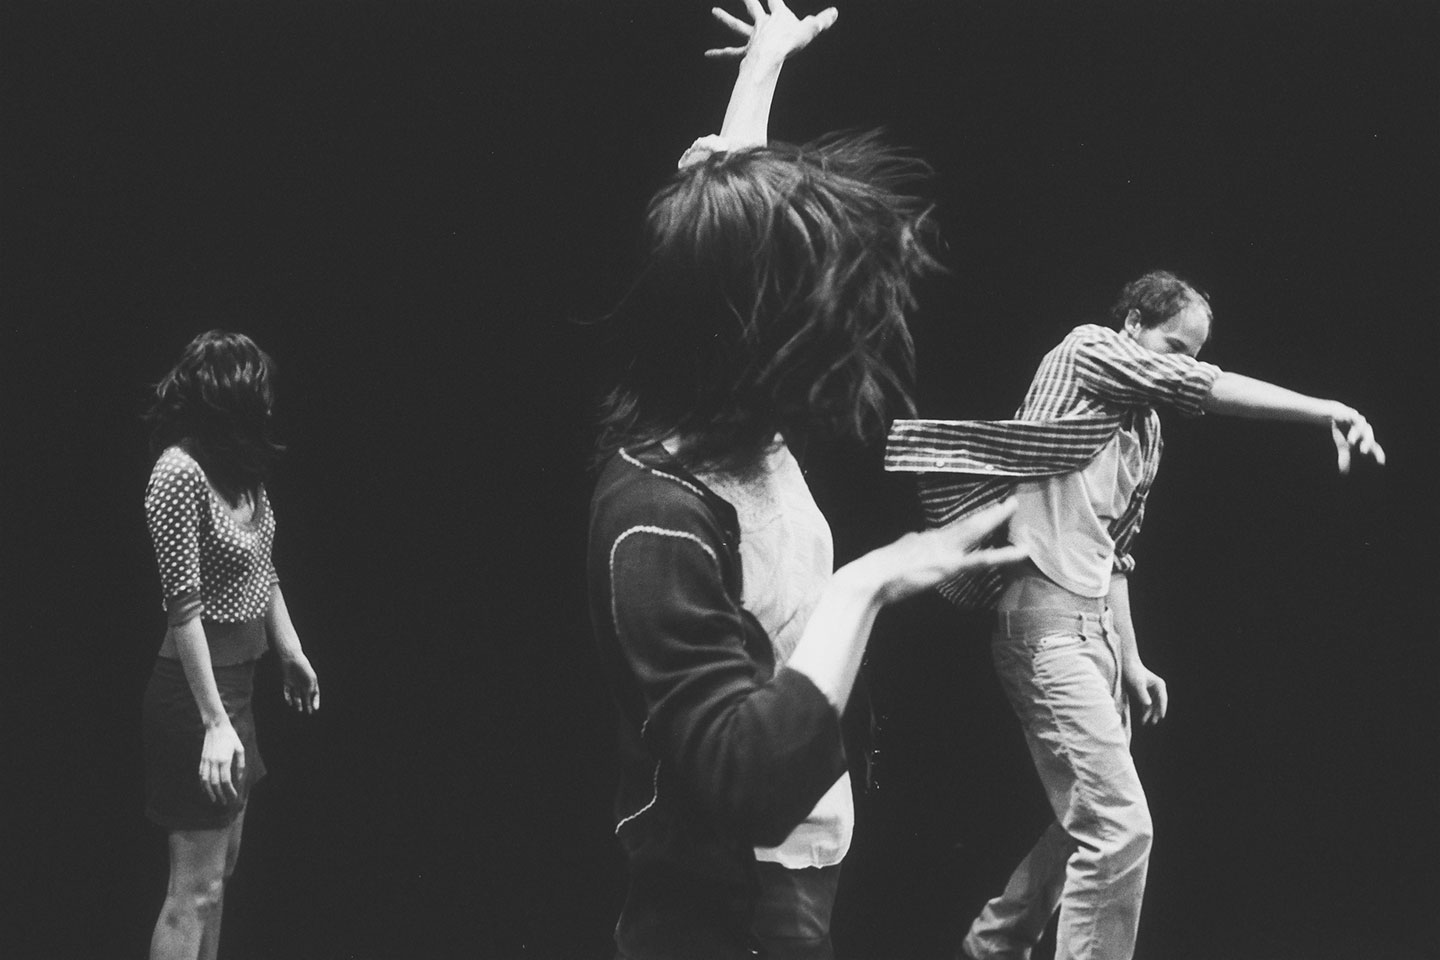 Joachim Koester, Tarantism, 2007. © Courtesy of Joachim Koester and Jan Mot, Brussels